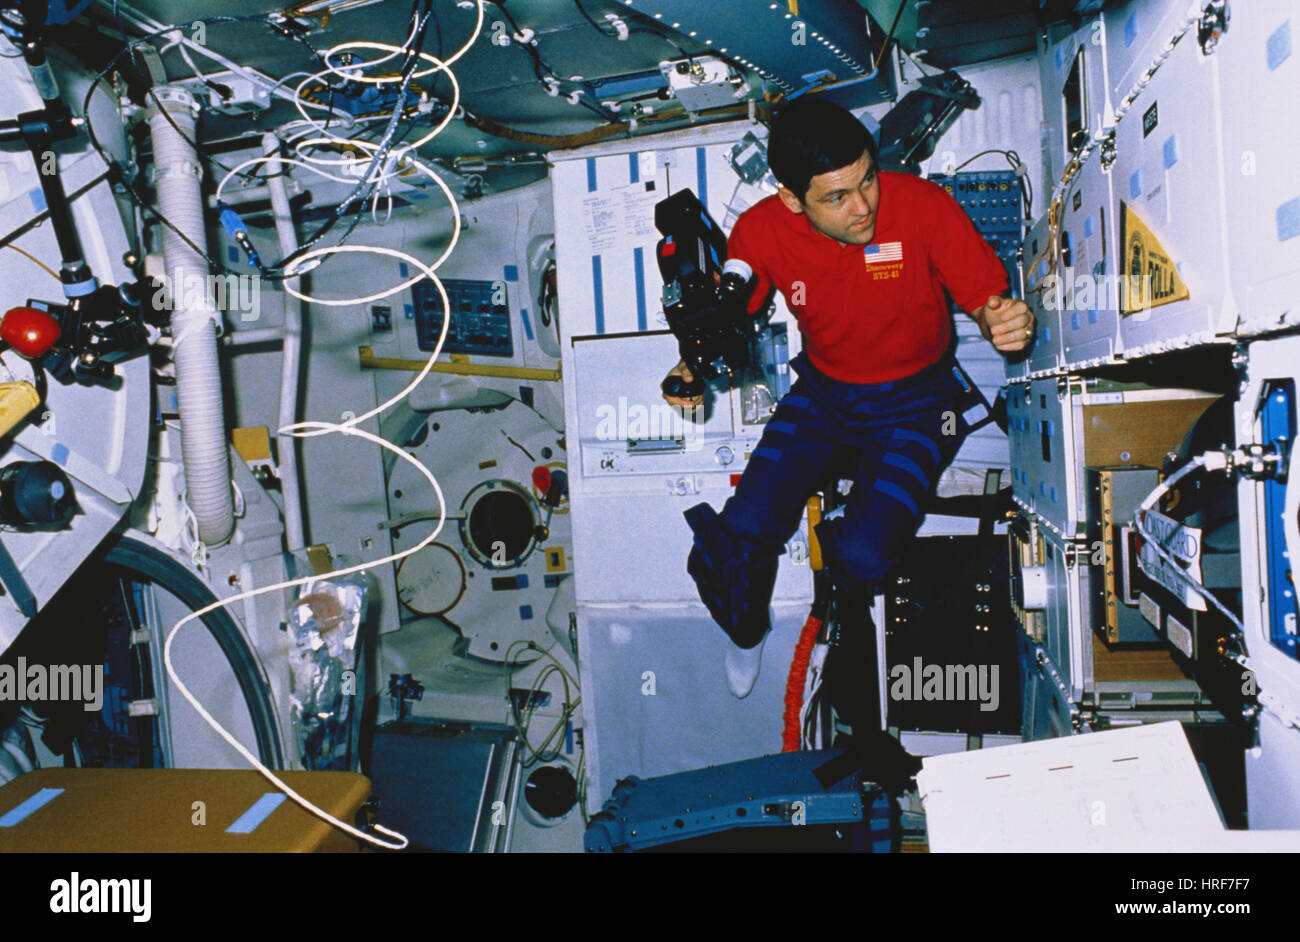 STS-41, Astronaut with Arriflex, 1990 - Stock Image